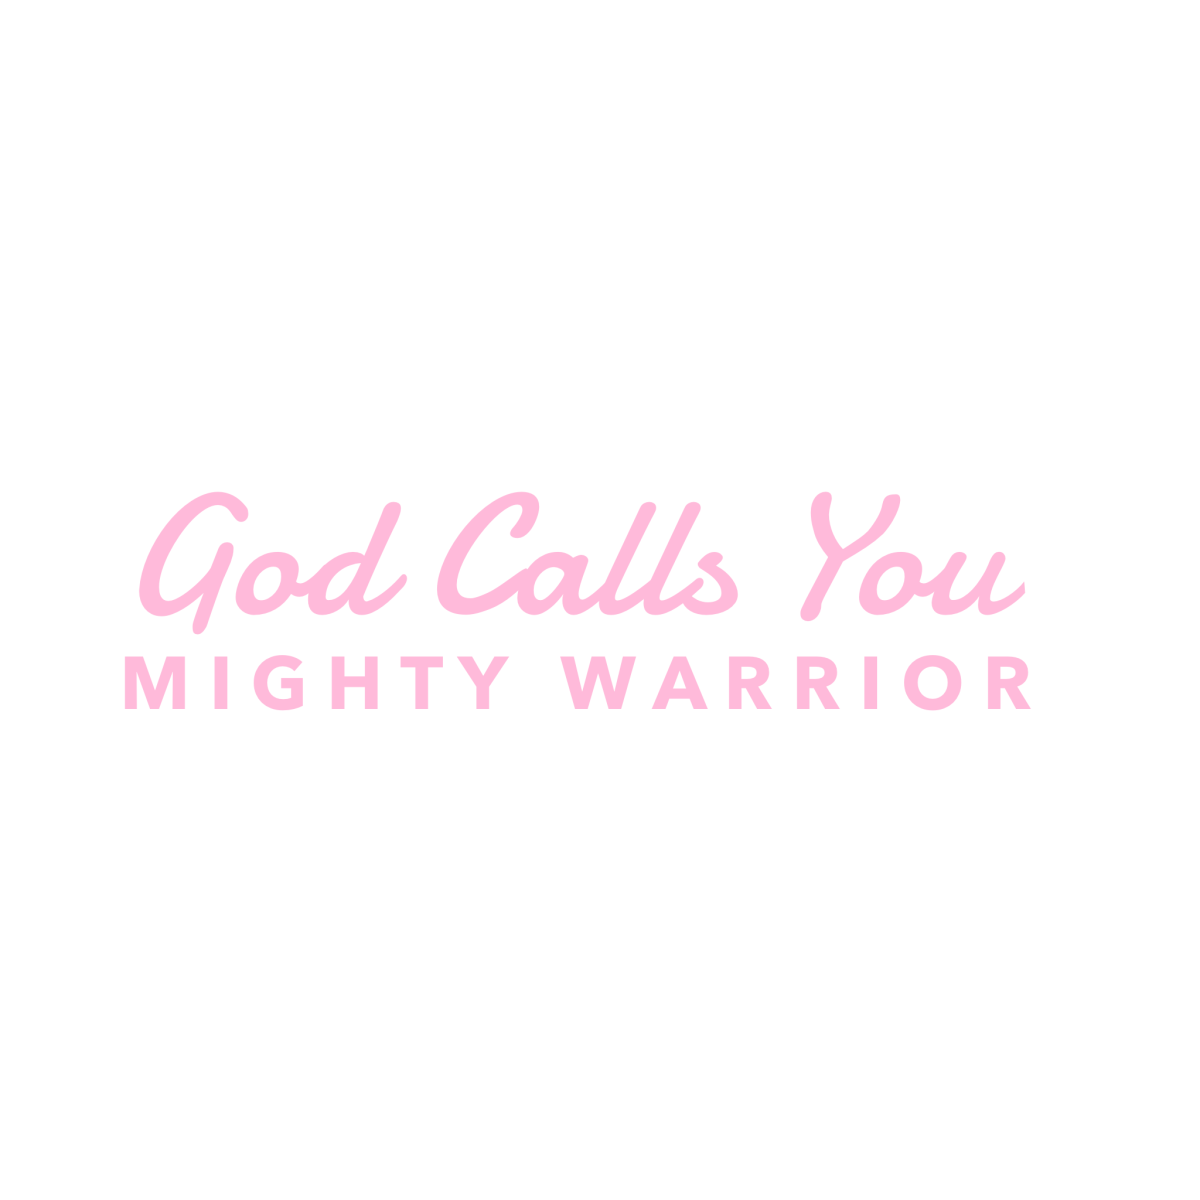 God Calls You Warrior